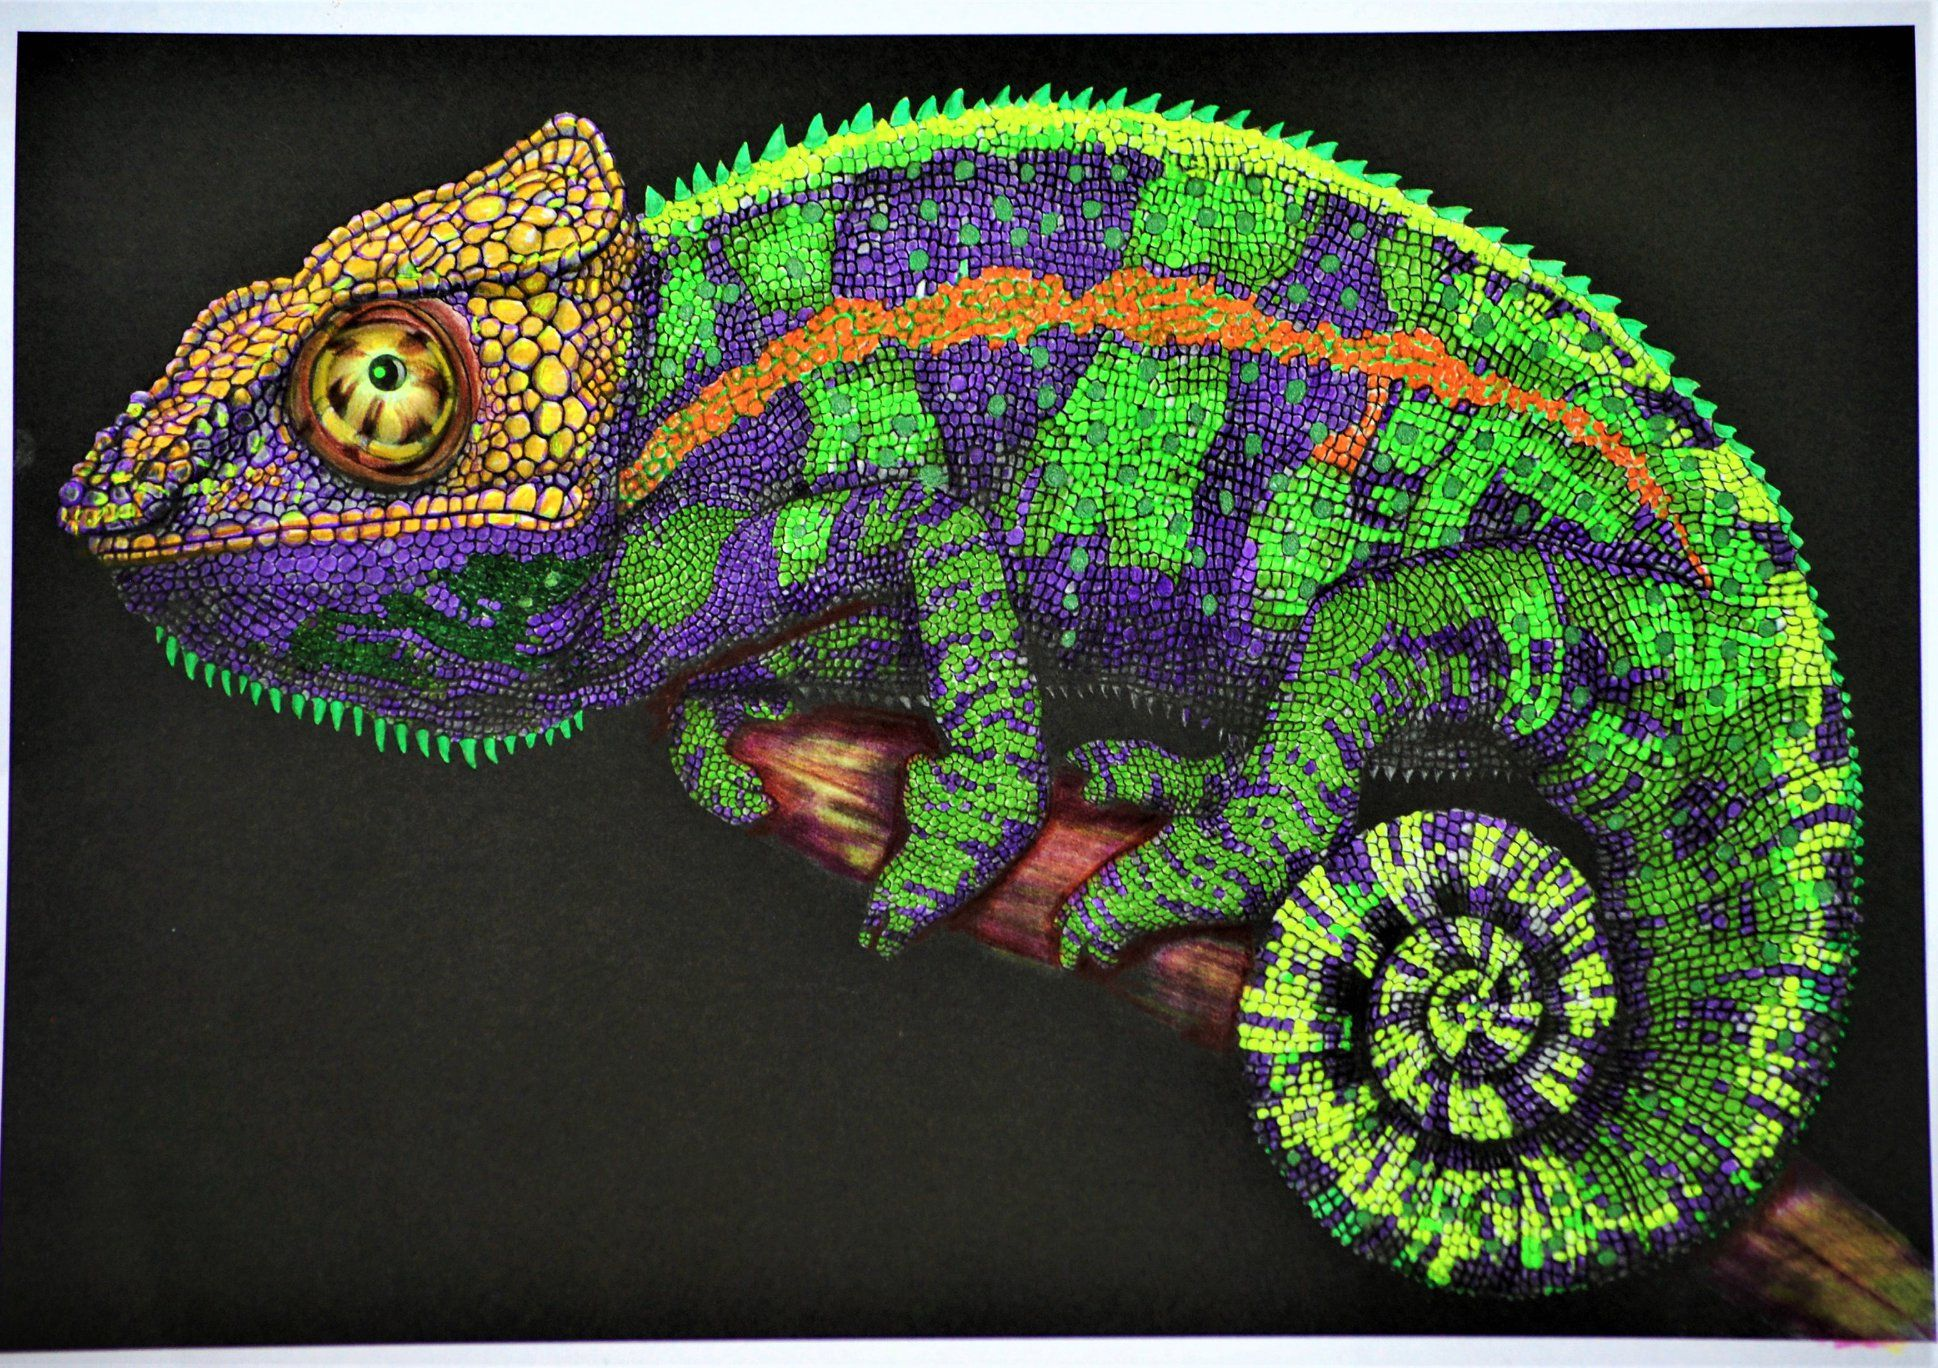 Coloring Page Of Chameleon Lizard Colorless And Color Samples For